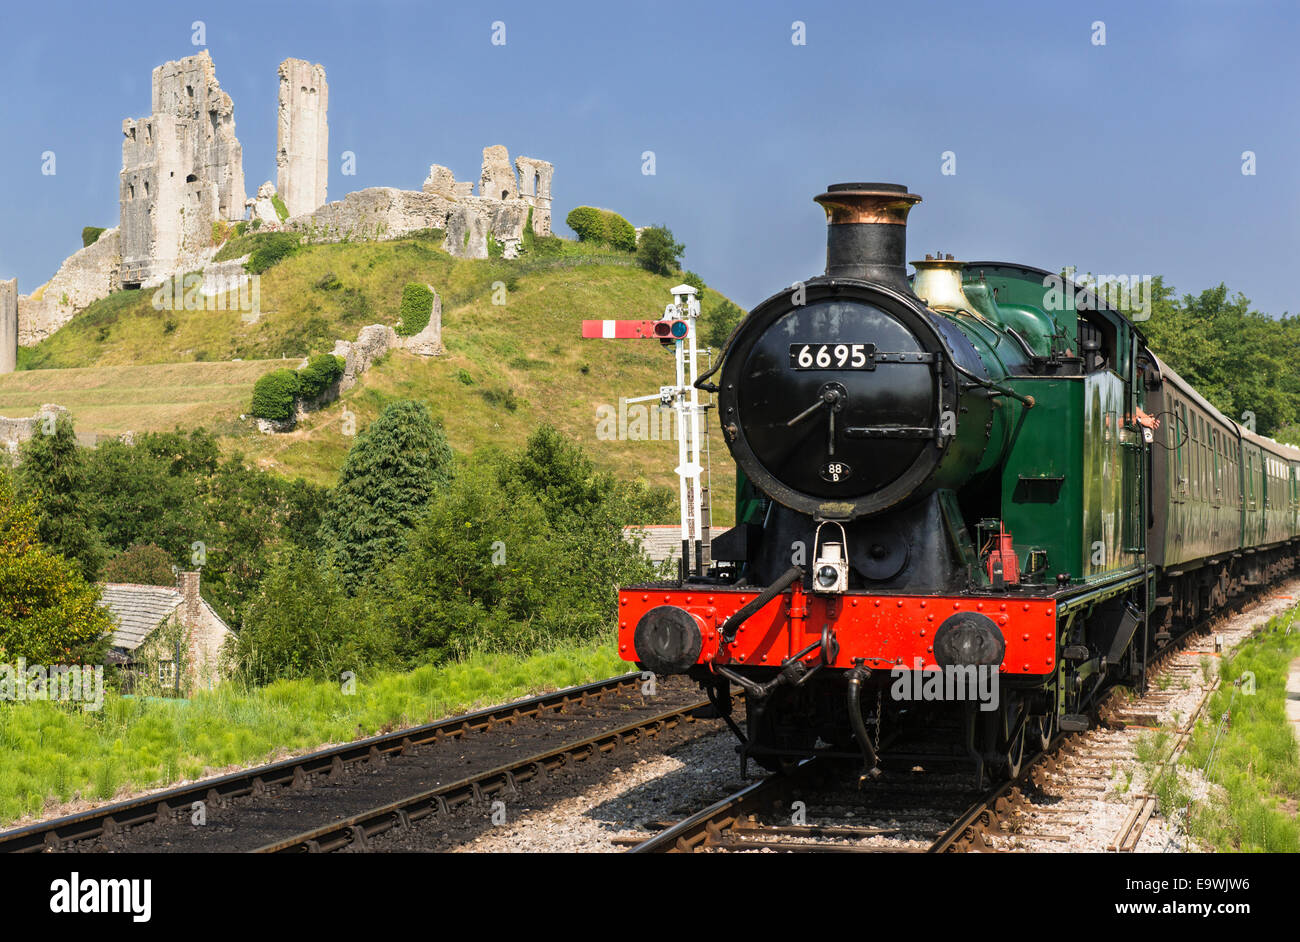 Heritage Swanage Railway with steam engine train 6695 (GWR 0-6-2T 5600